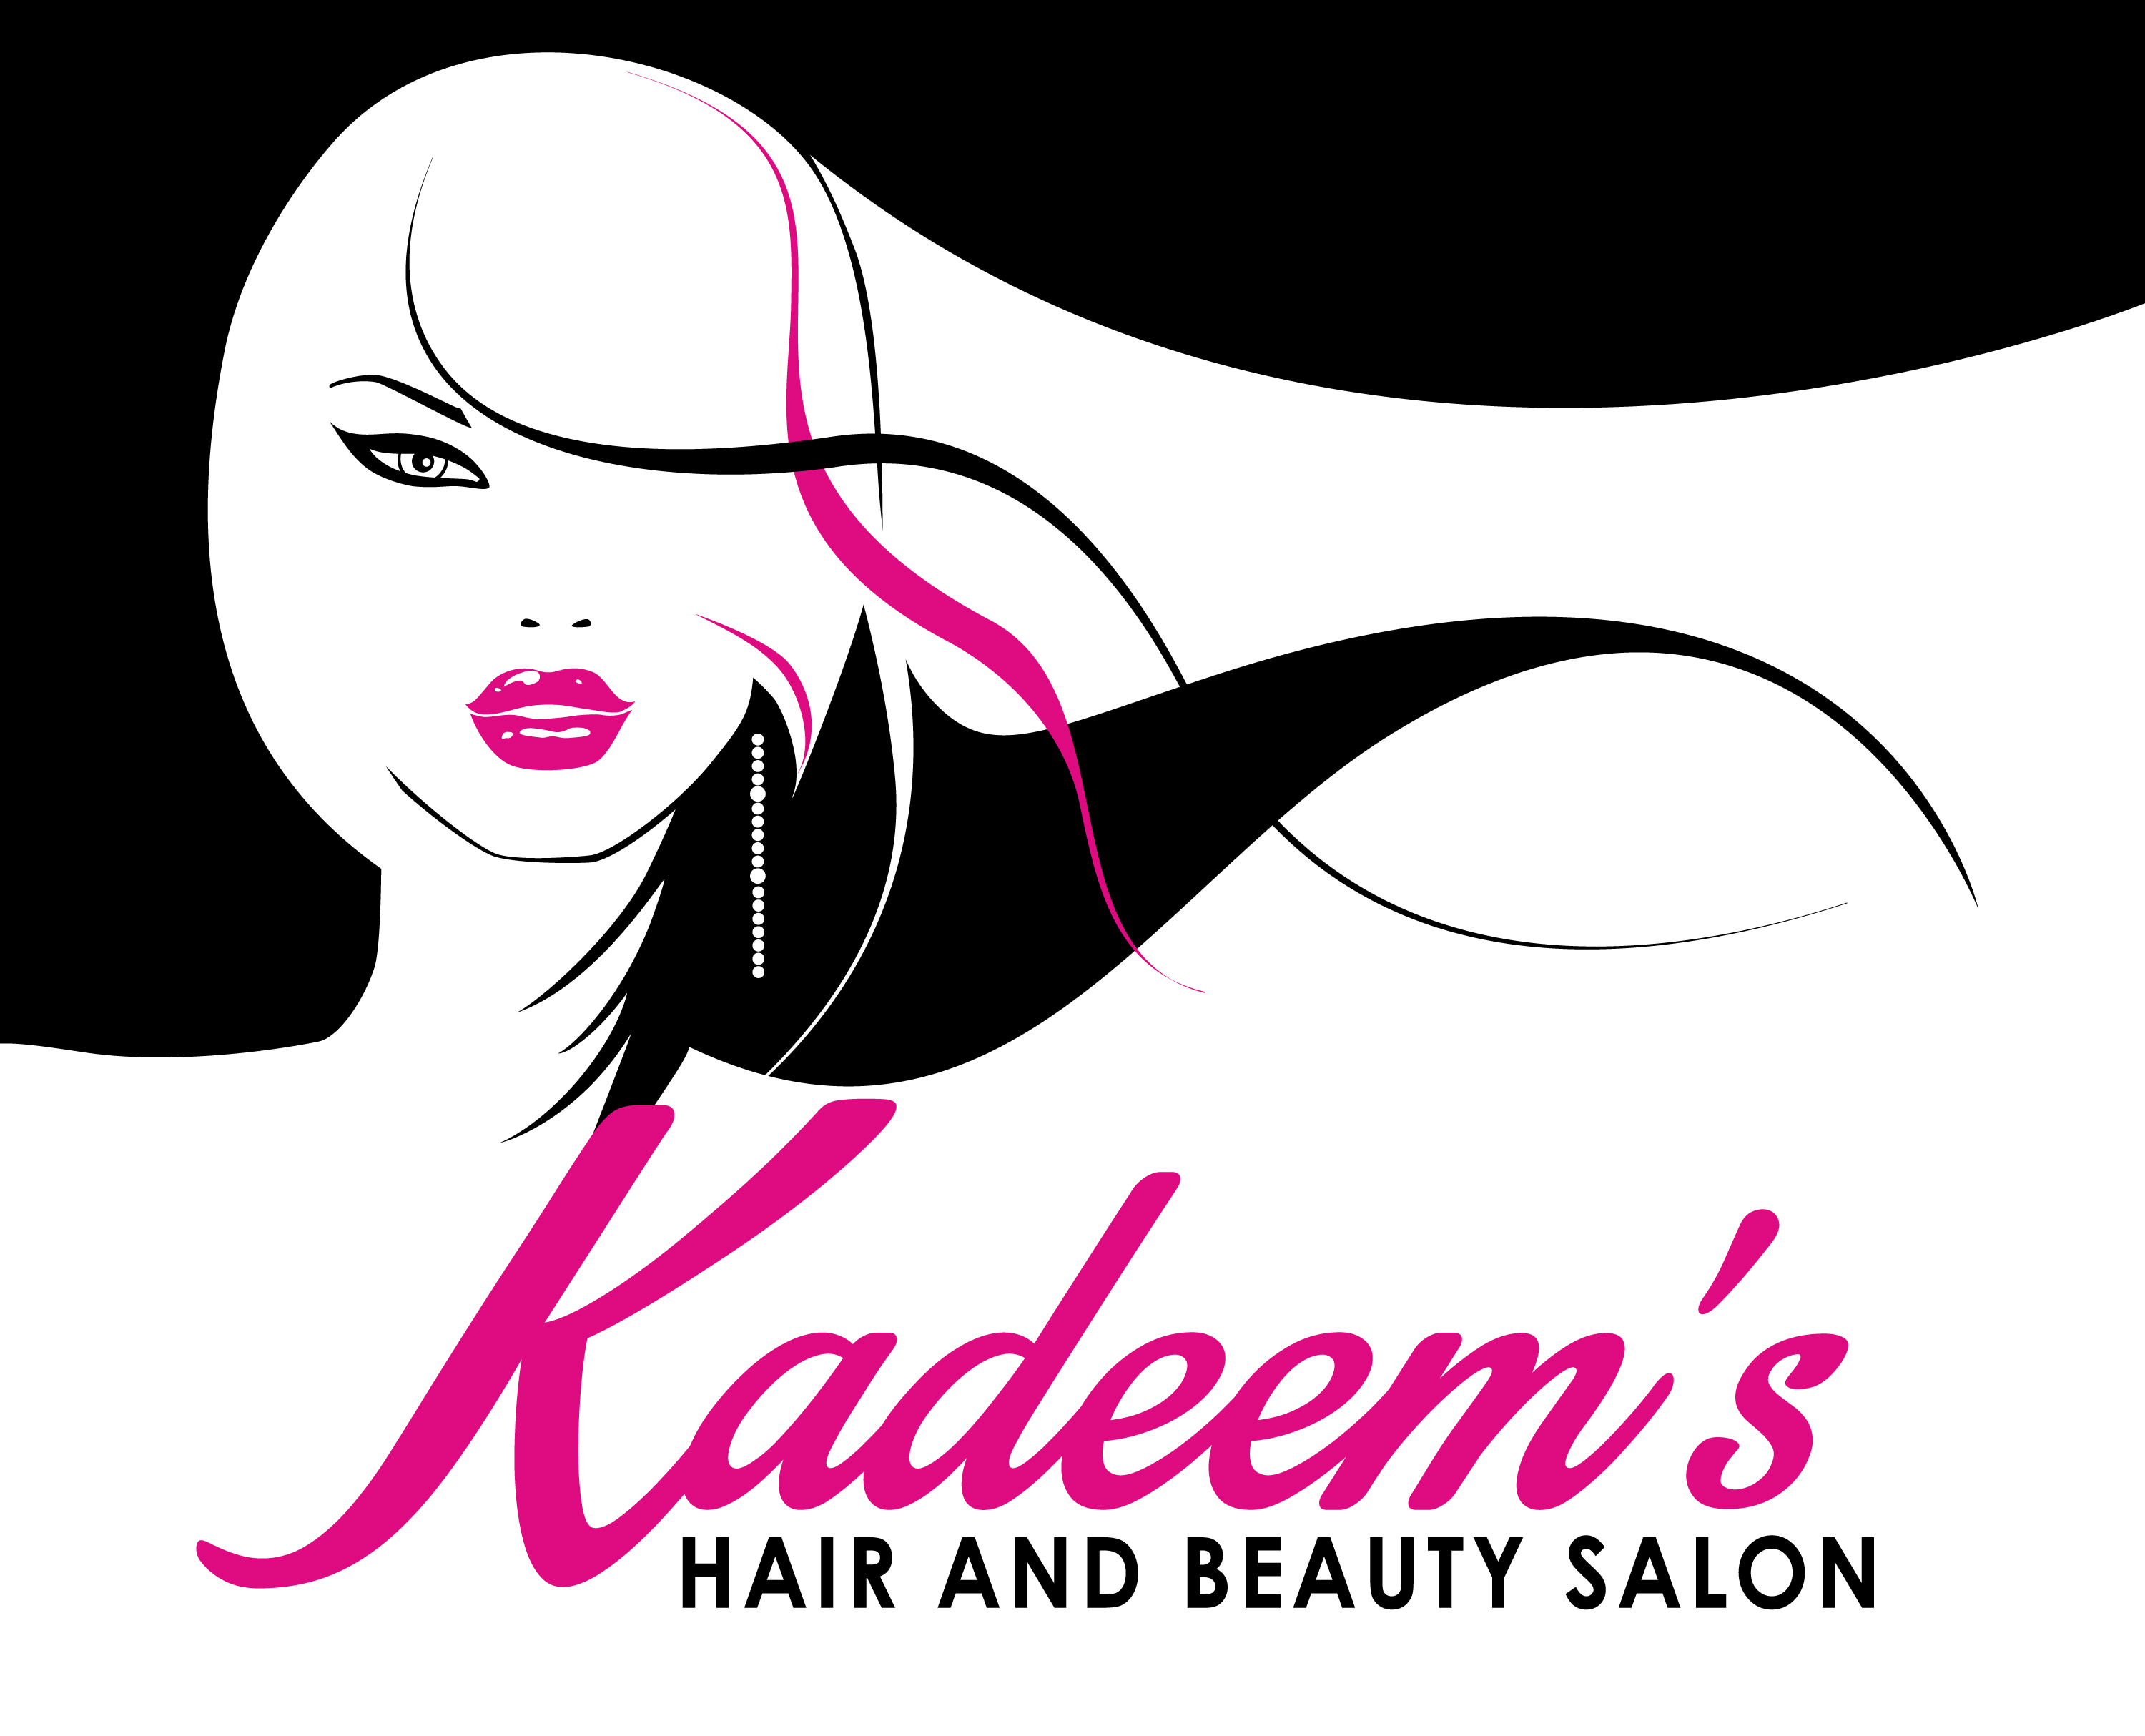 hair salon logos and clipart clipart suggest